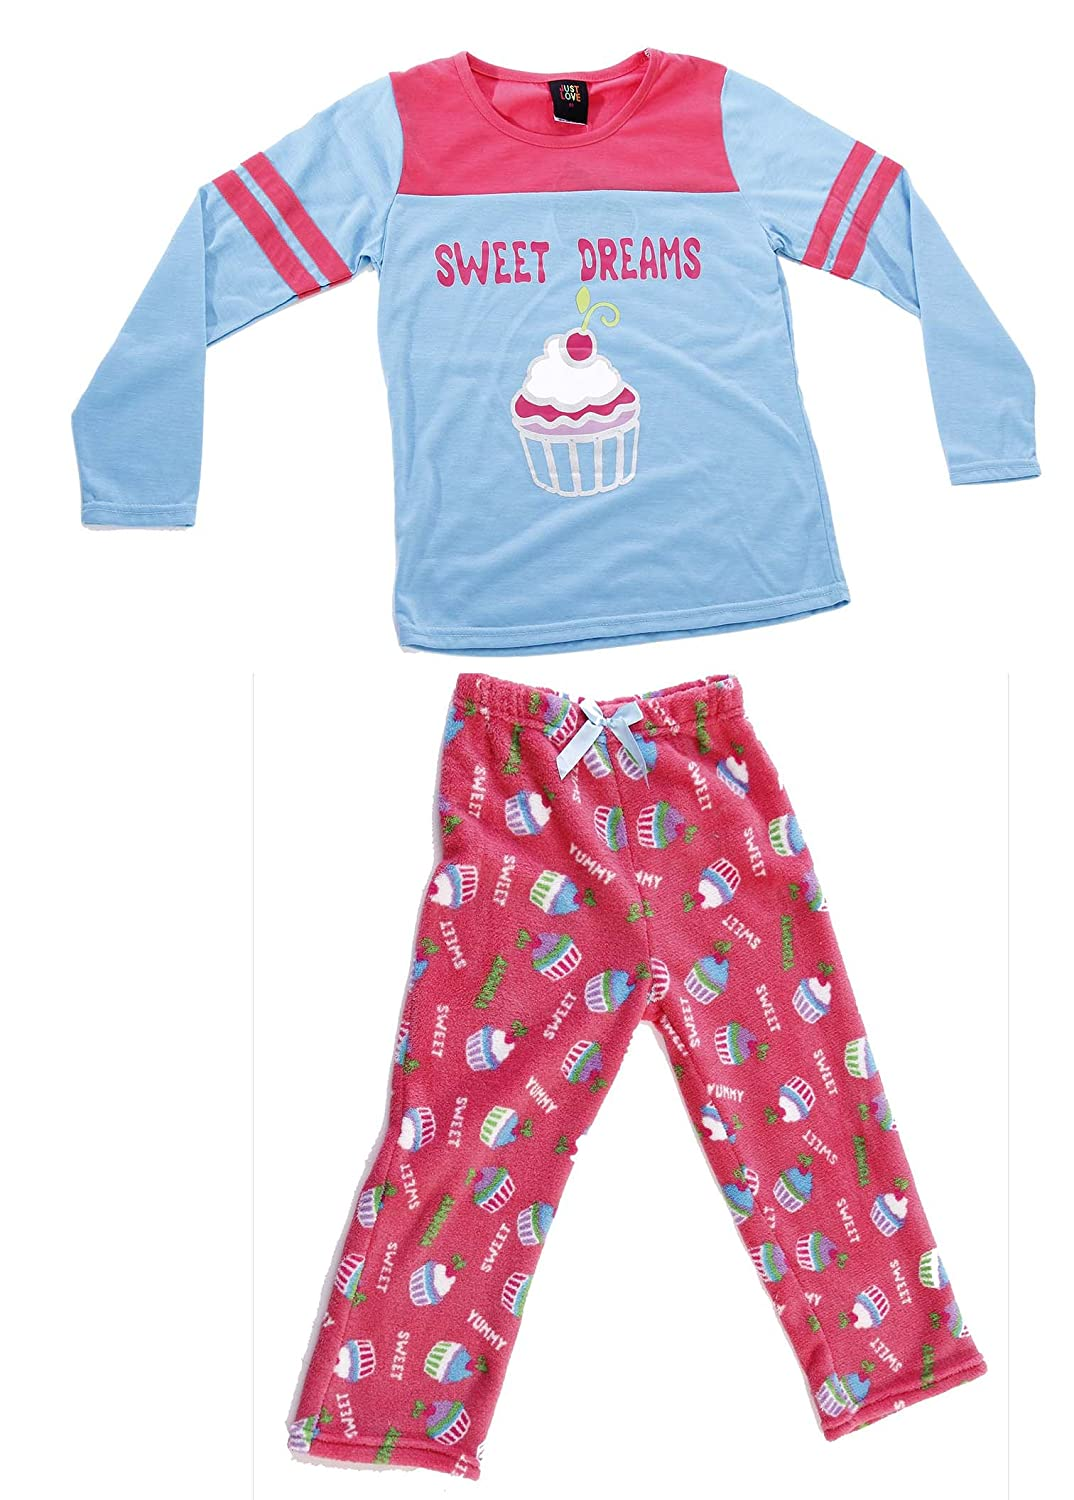 Just Love Two Piece Girls Screen Print Pajamas Set - Jersey Top - Fleece Bottom